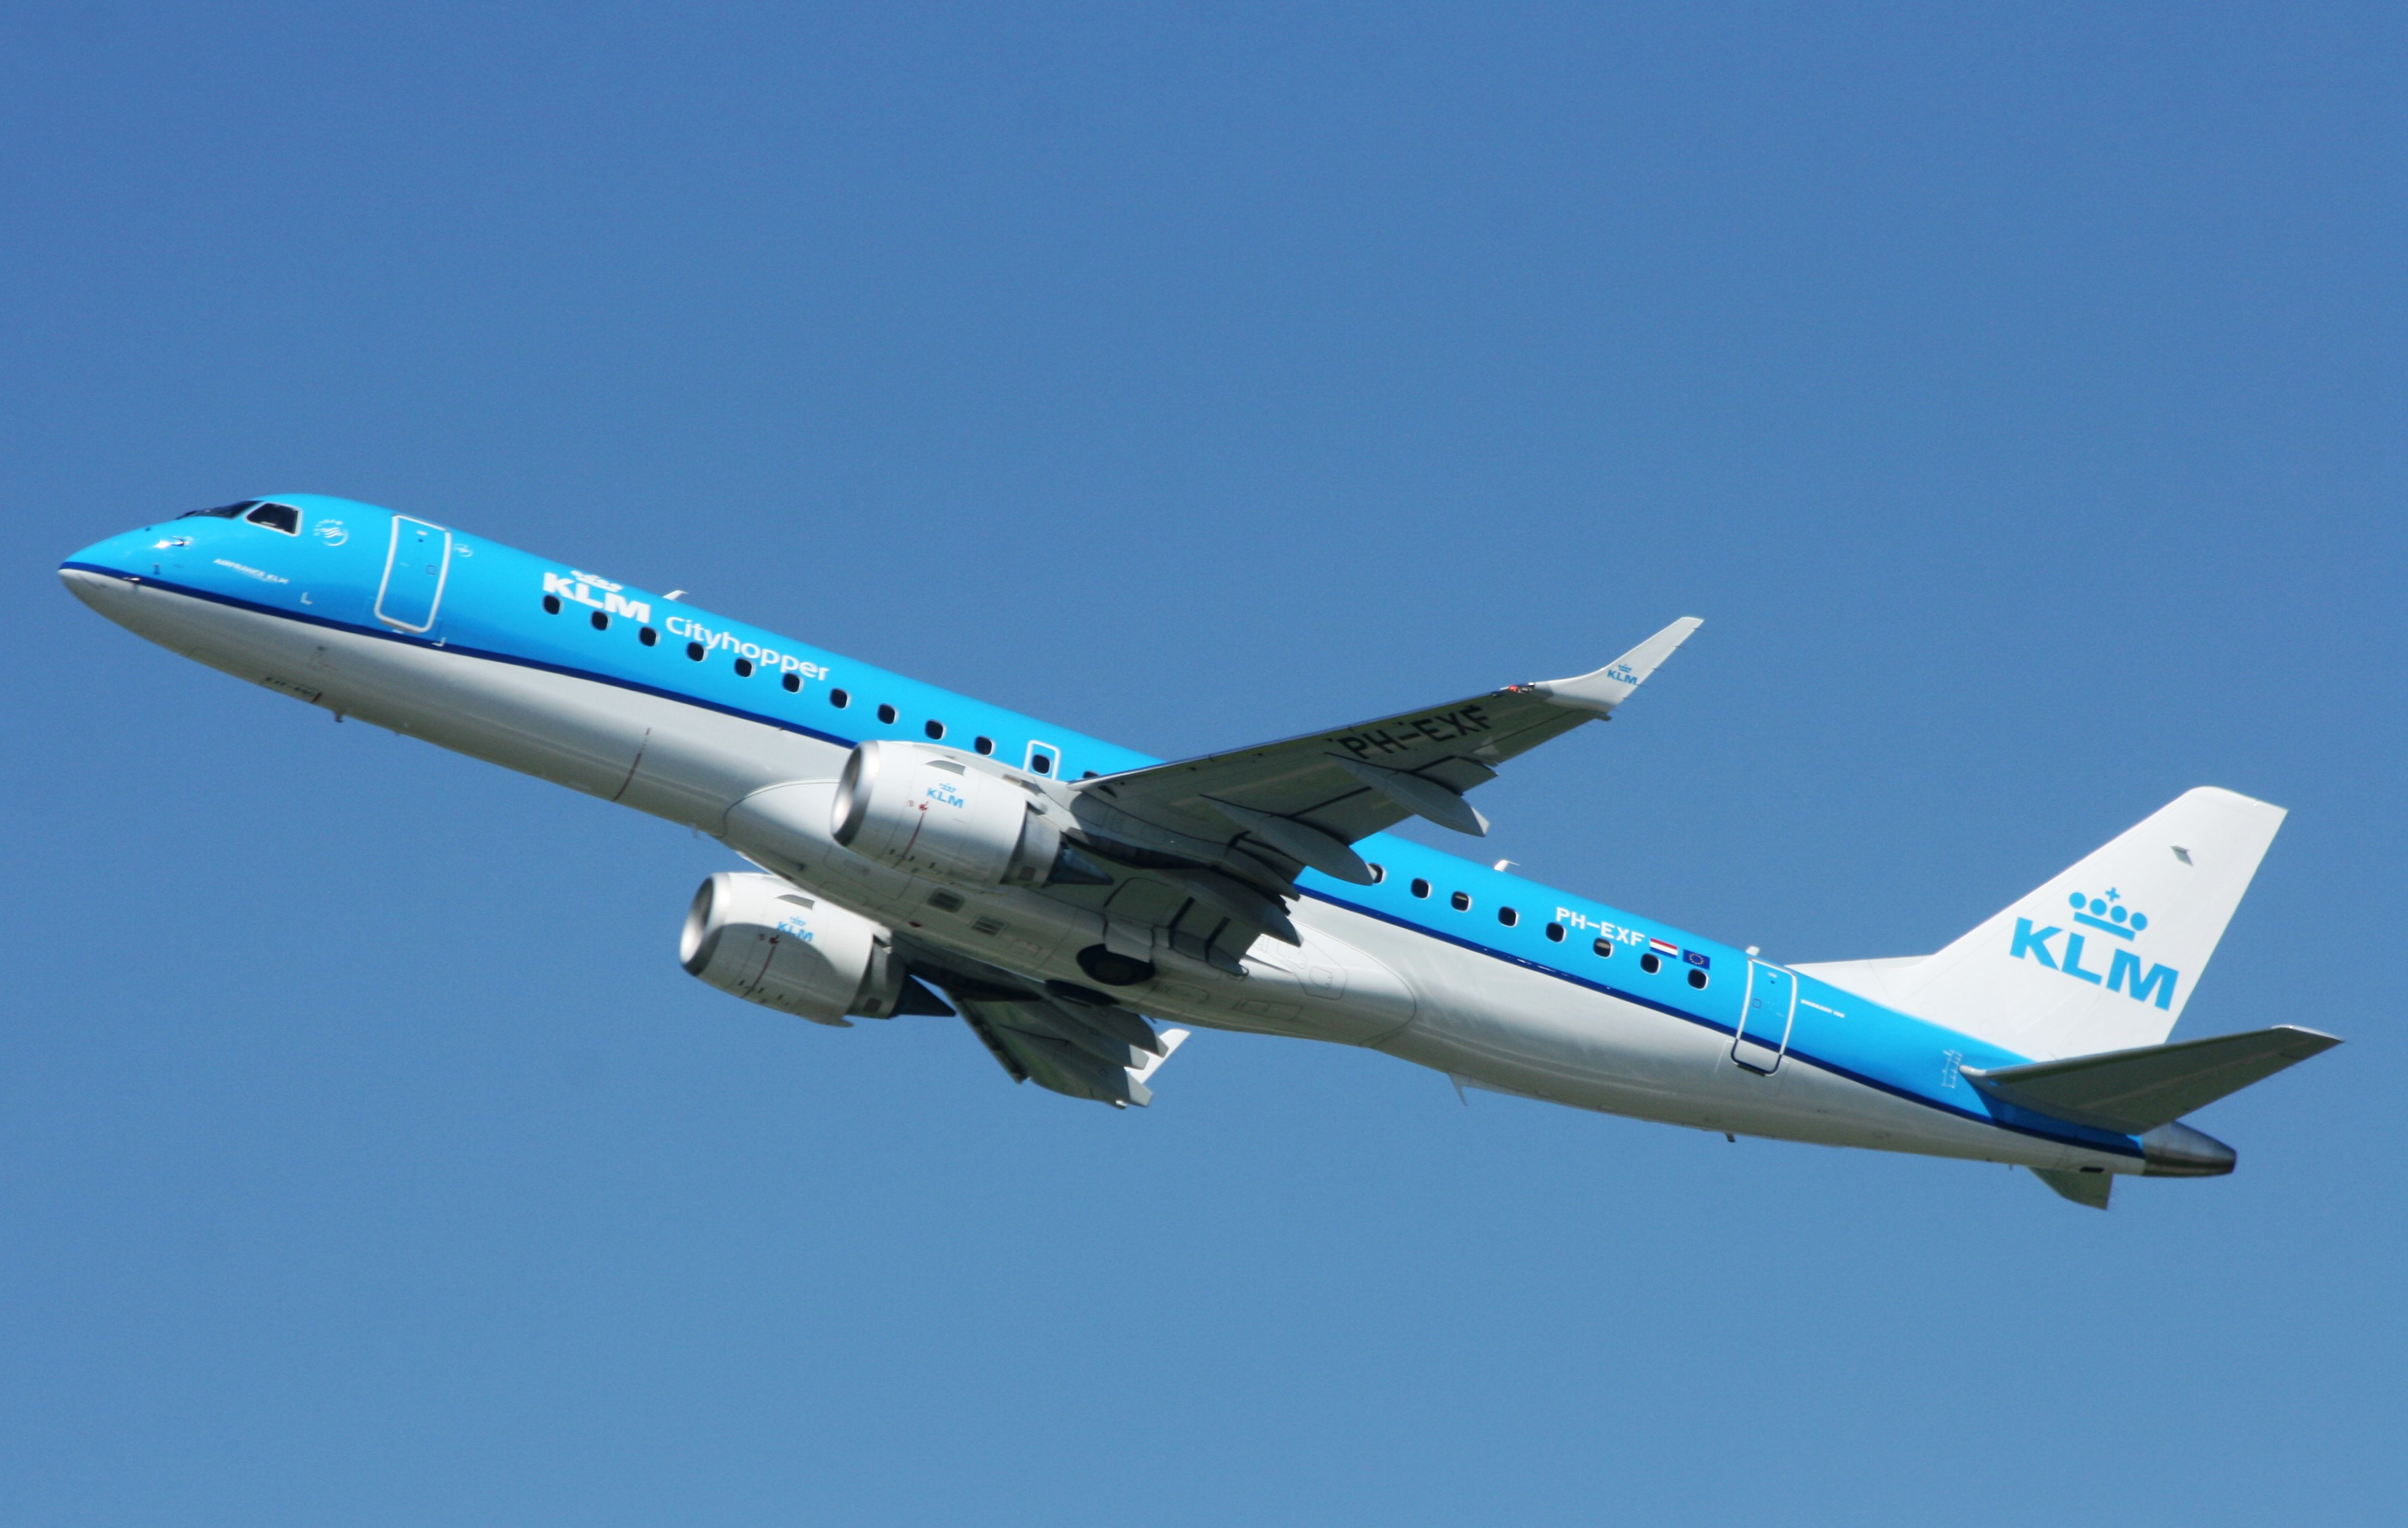 After An Absence Of 50 Years Klm Returns With A Dublin